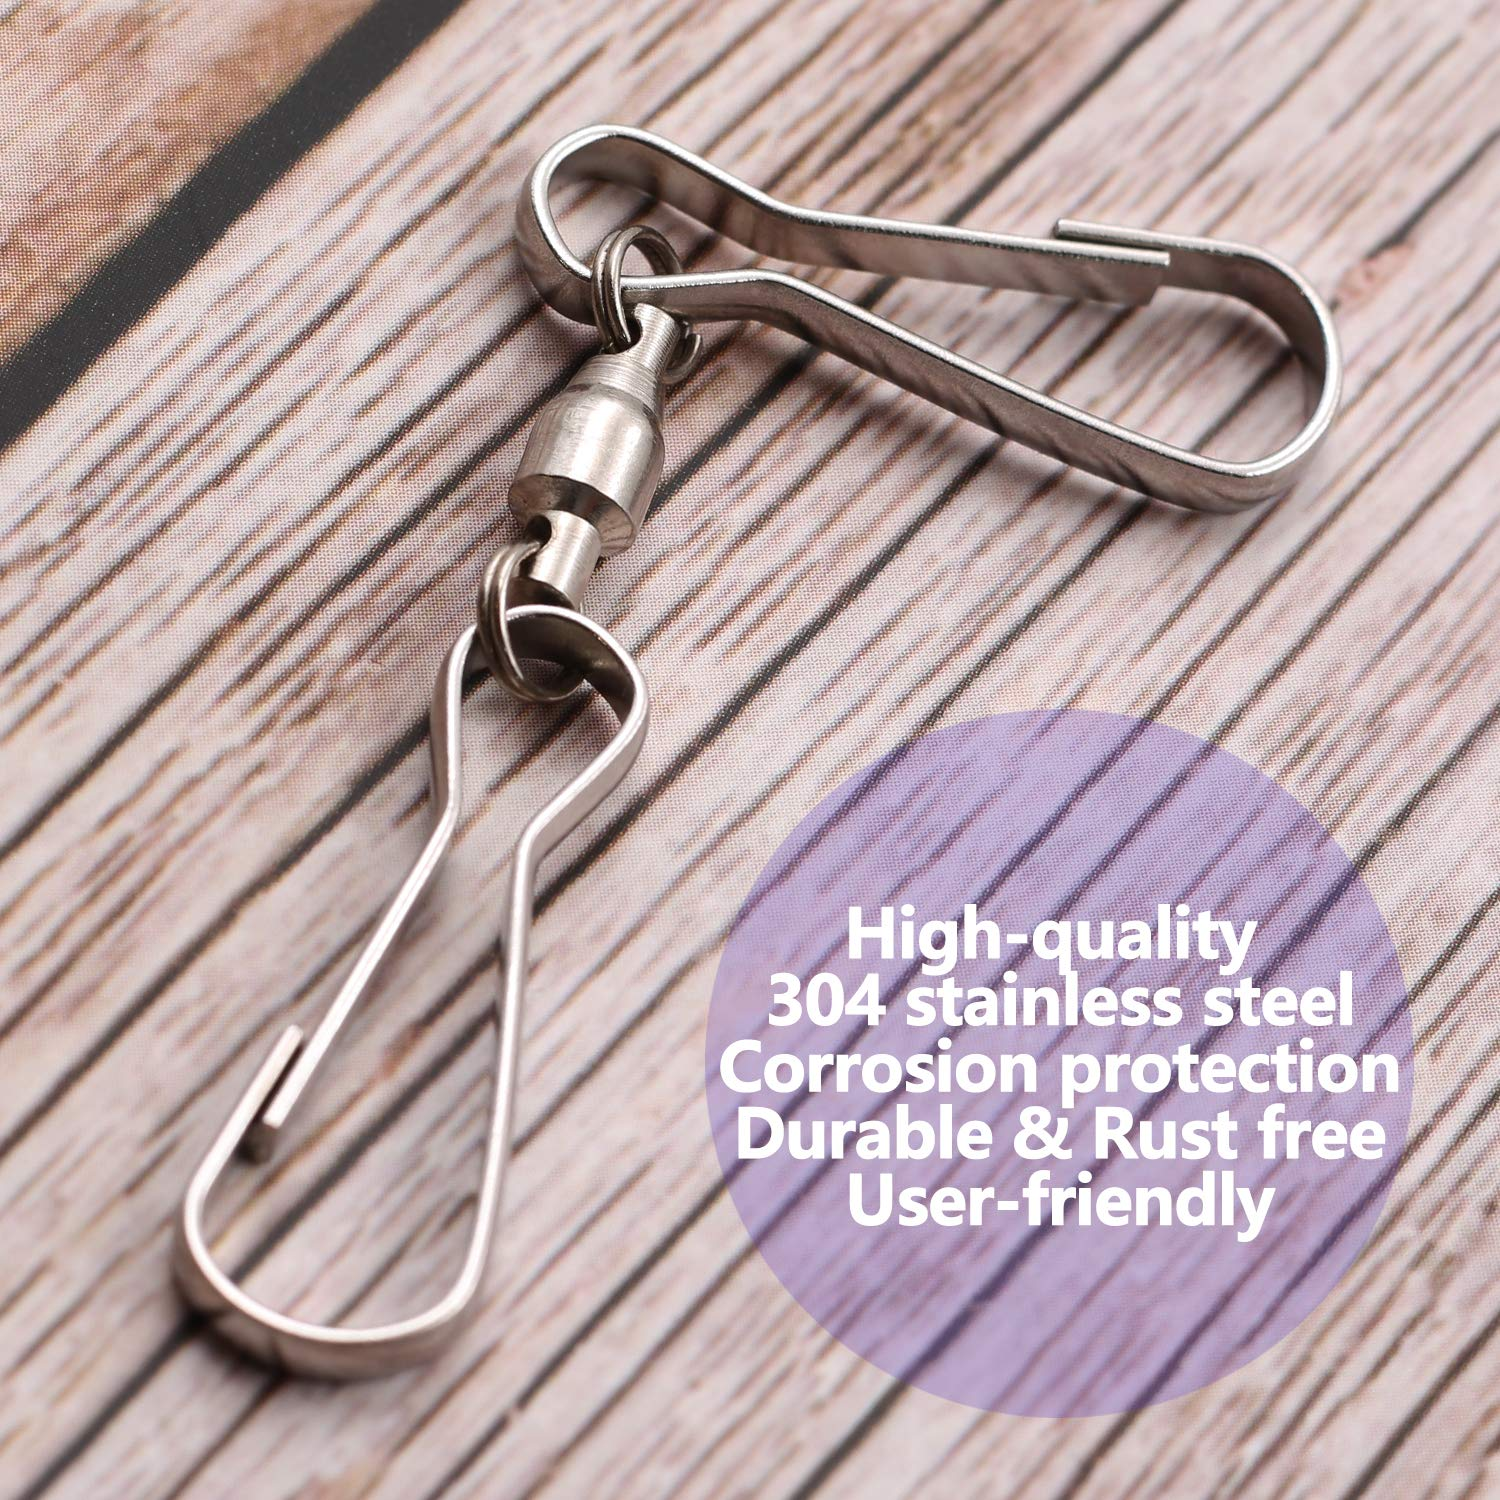 Flags Small Plants Pots Anley Pack of 10 Windsock Clips Bird Feeders Ideal for Wind Spinners 3 Dual Swivel Hook /& 360/° Rotatable /& Anti-wrap /& Stainless Party Supplies